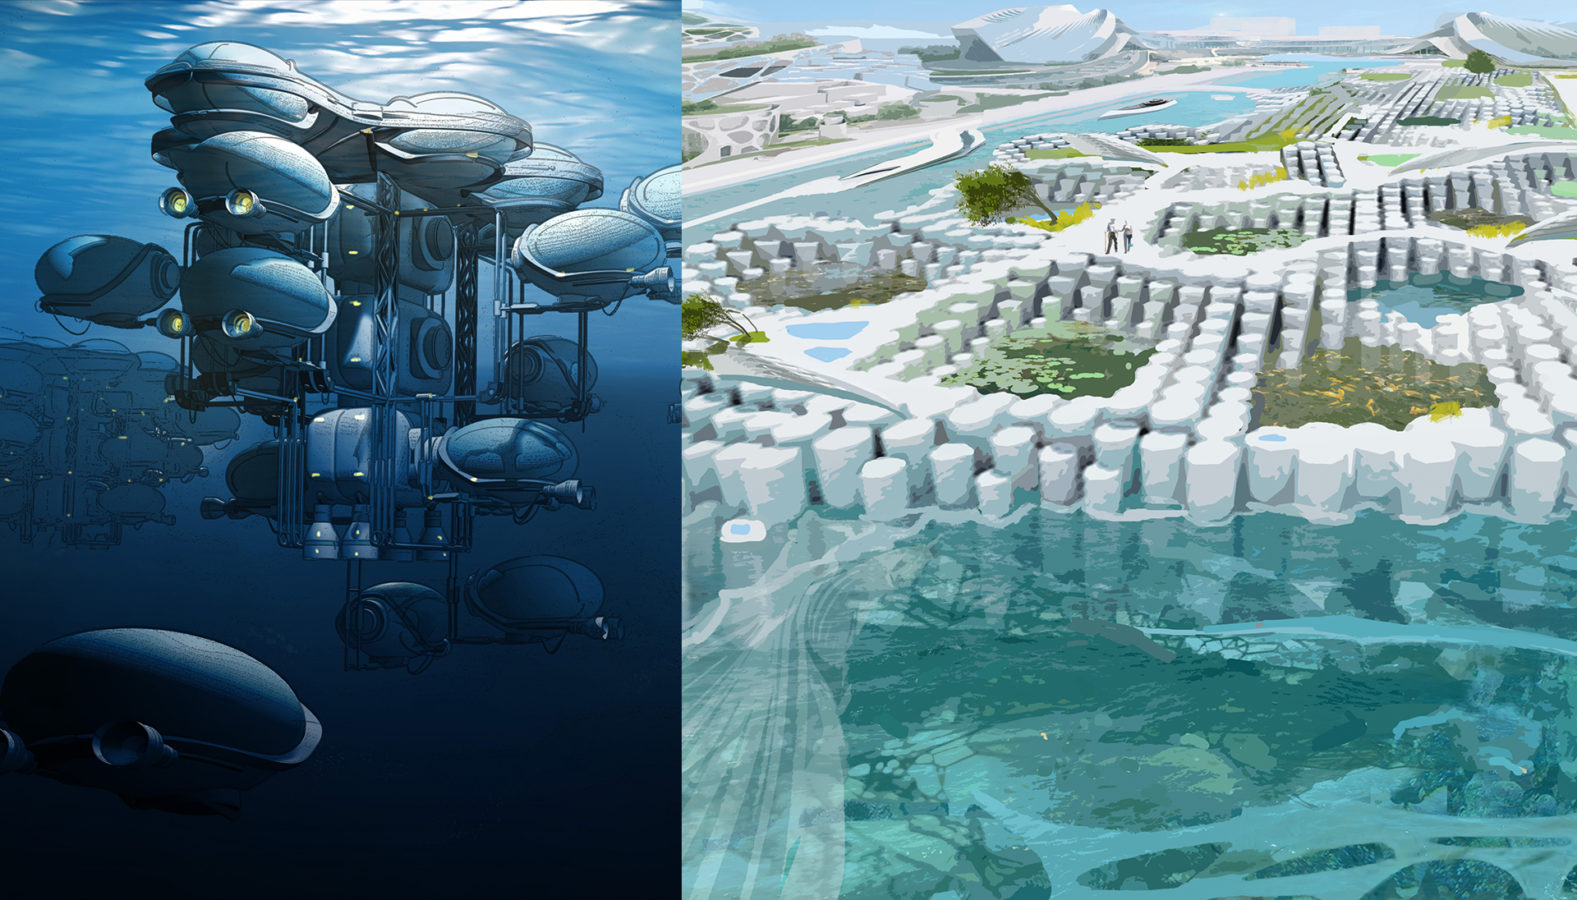 02 | The Floating City leverages innovations in ocean engineering to create an urban system that operates in symbiosis with its surrounding ecology both above and below the surface. Illustrations by Alisa Romanova and Anda Sung.